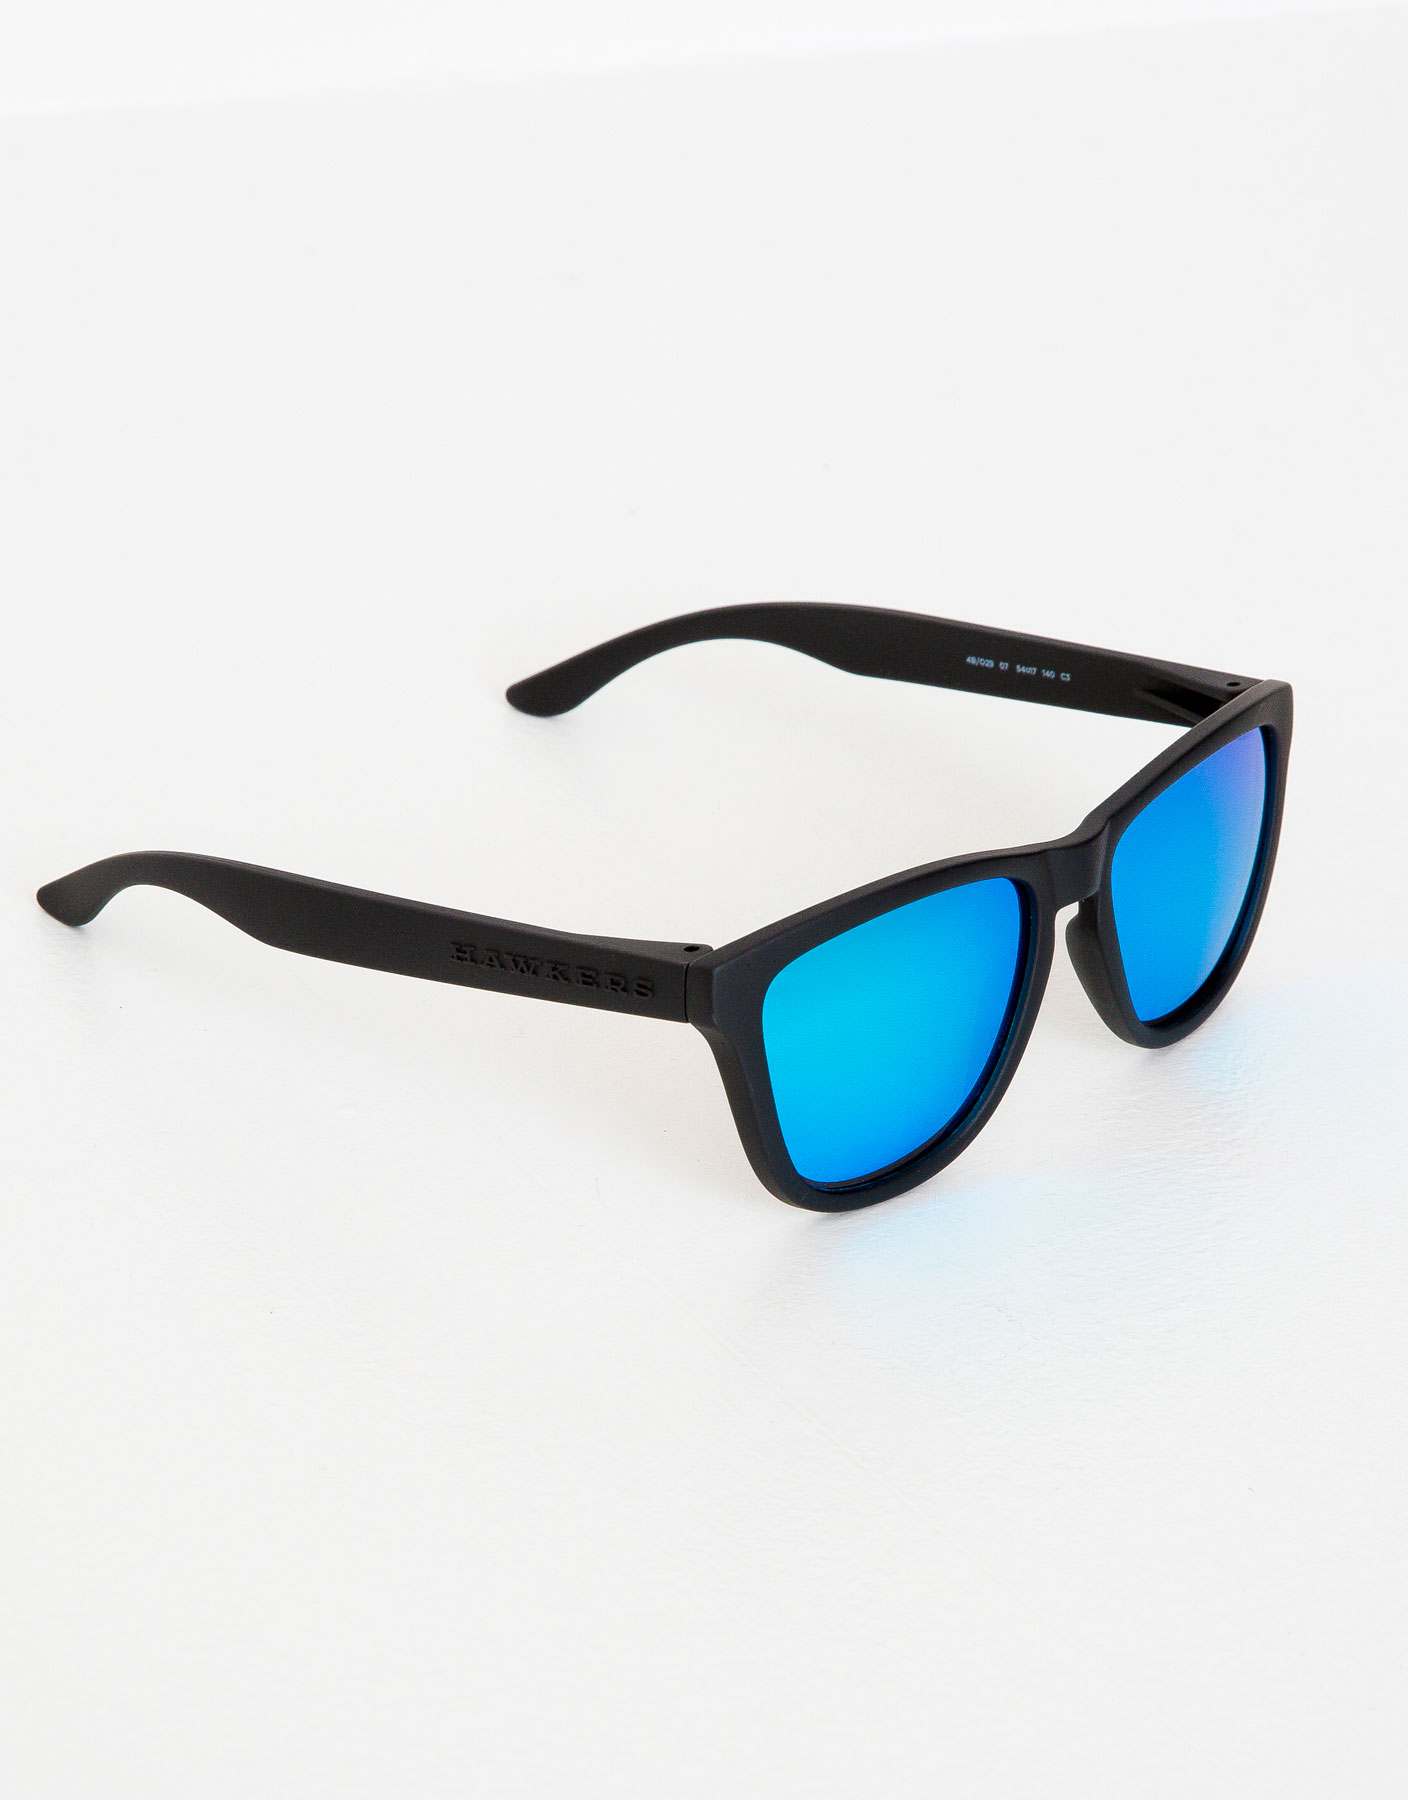 Lentes de sol hawkers carbon black clear blue one